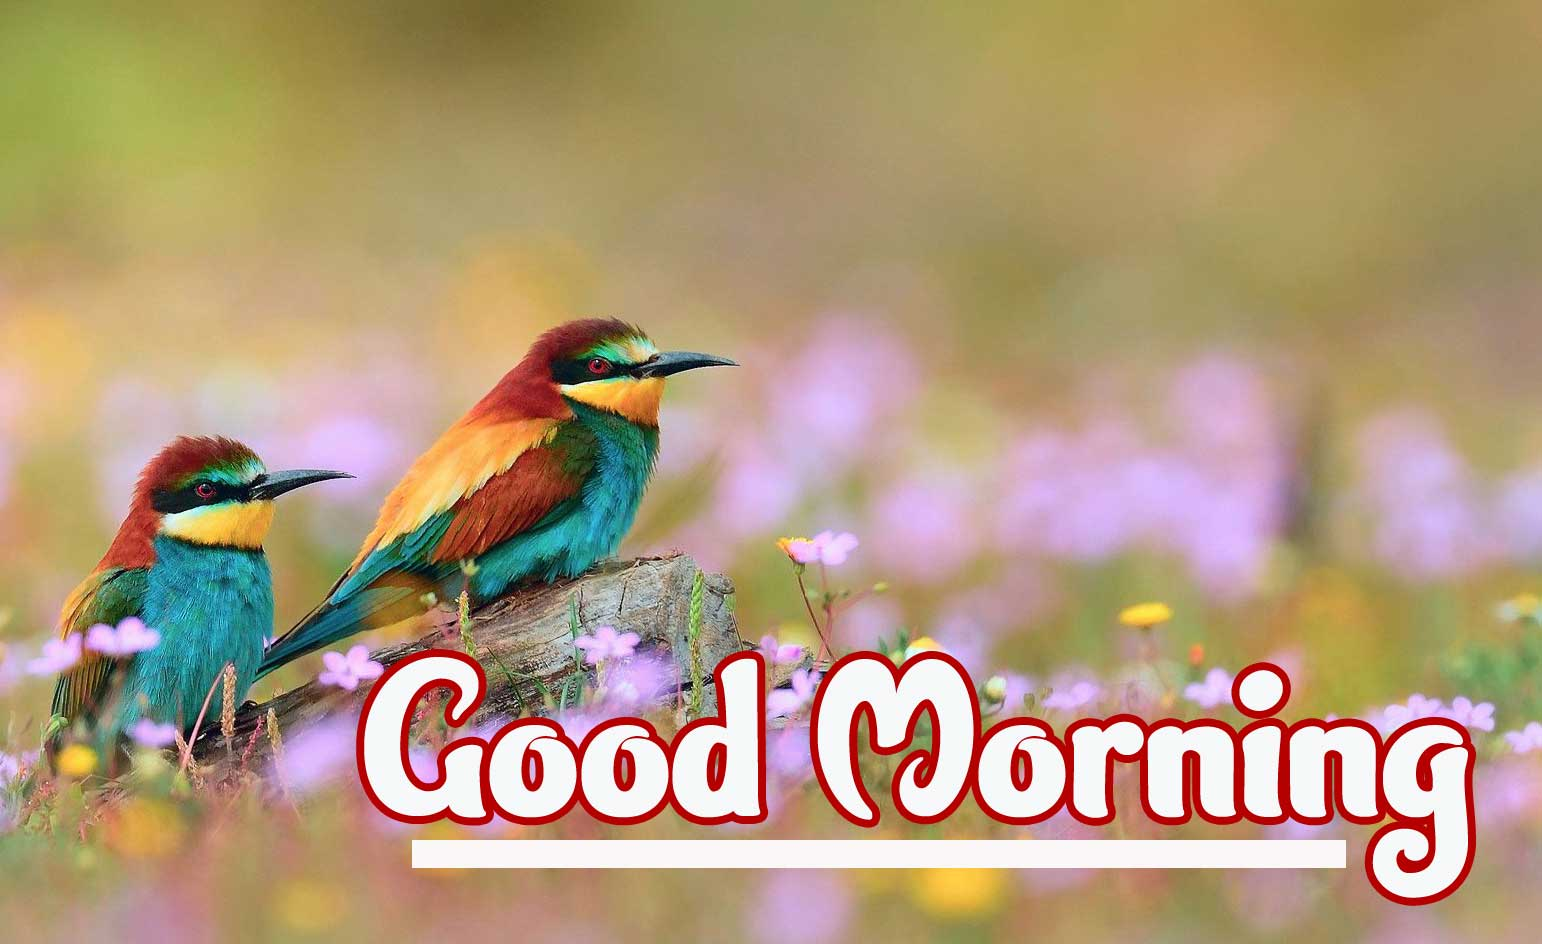 Good Morning Wallpaper pics Download Latest Free